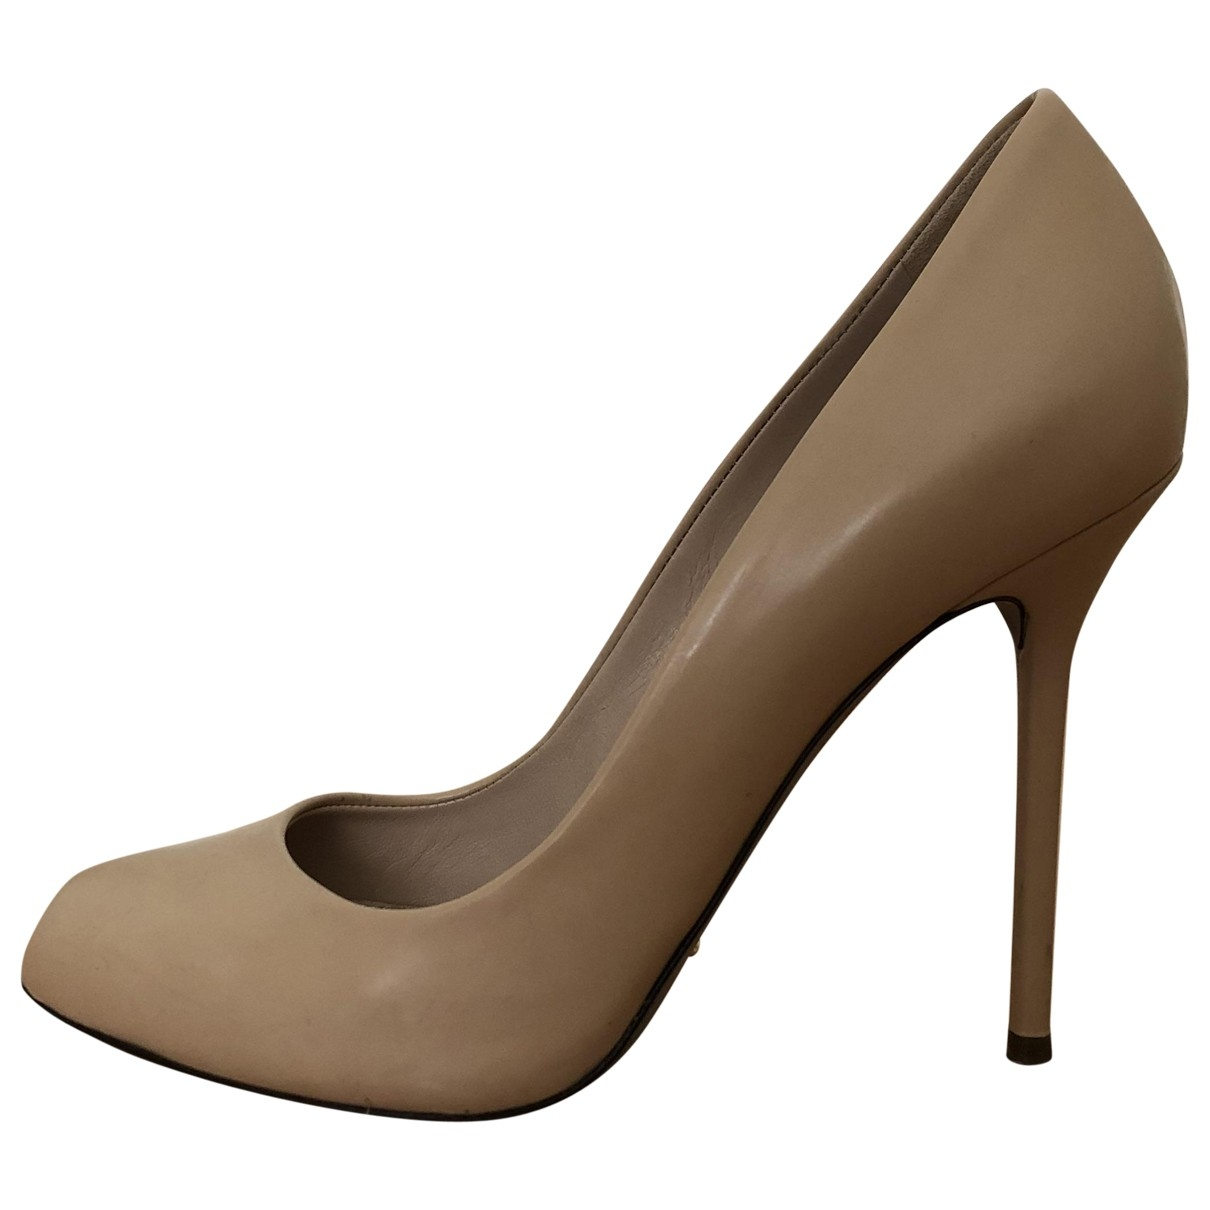 Sergio Rossi \N Beige Leather Heels for Women 37.5 EU